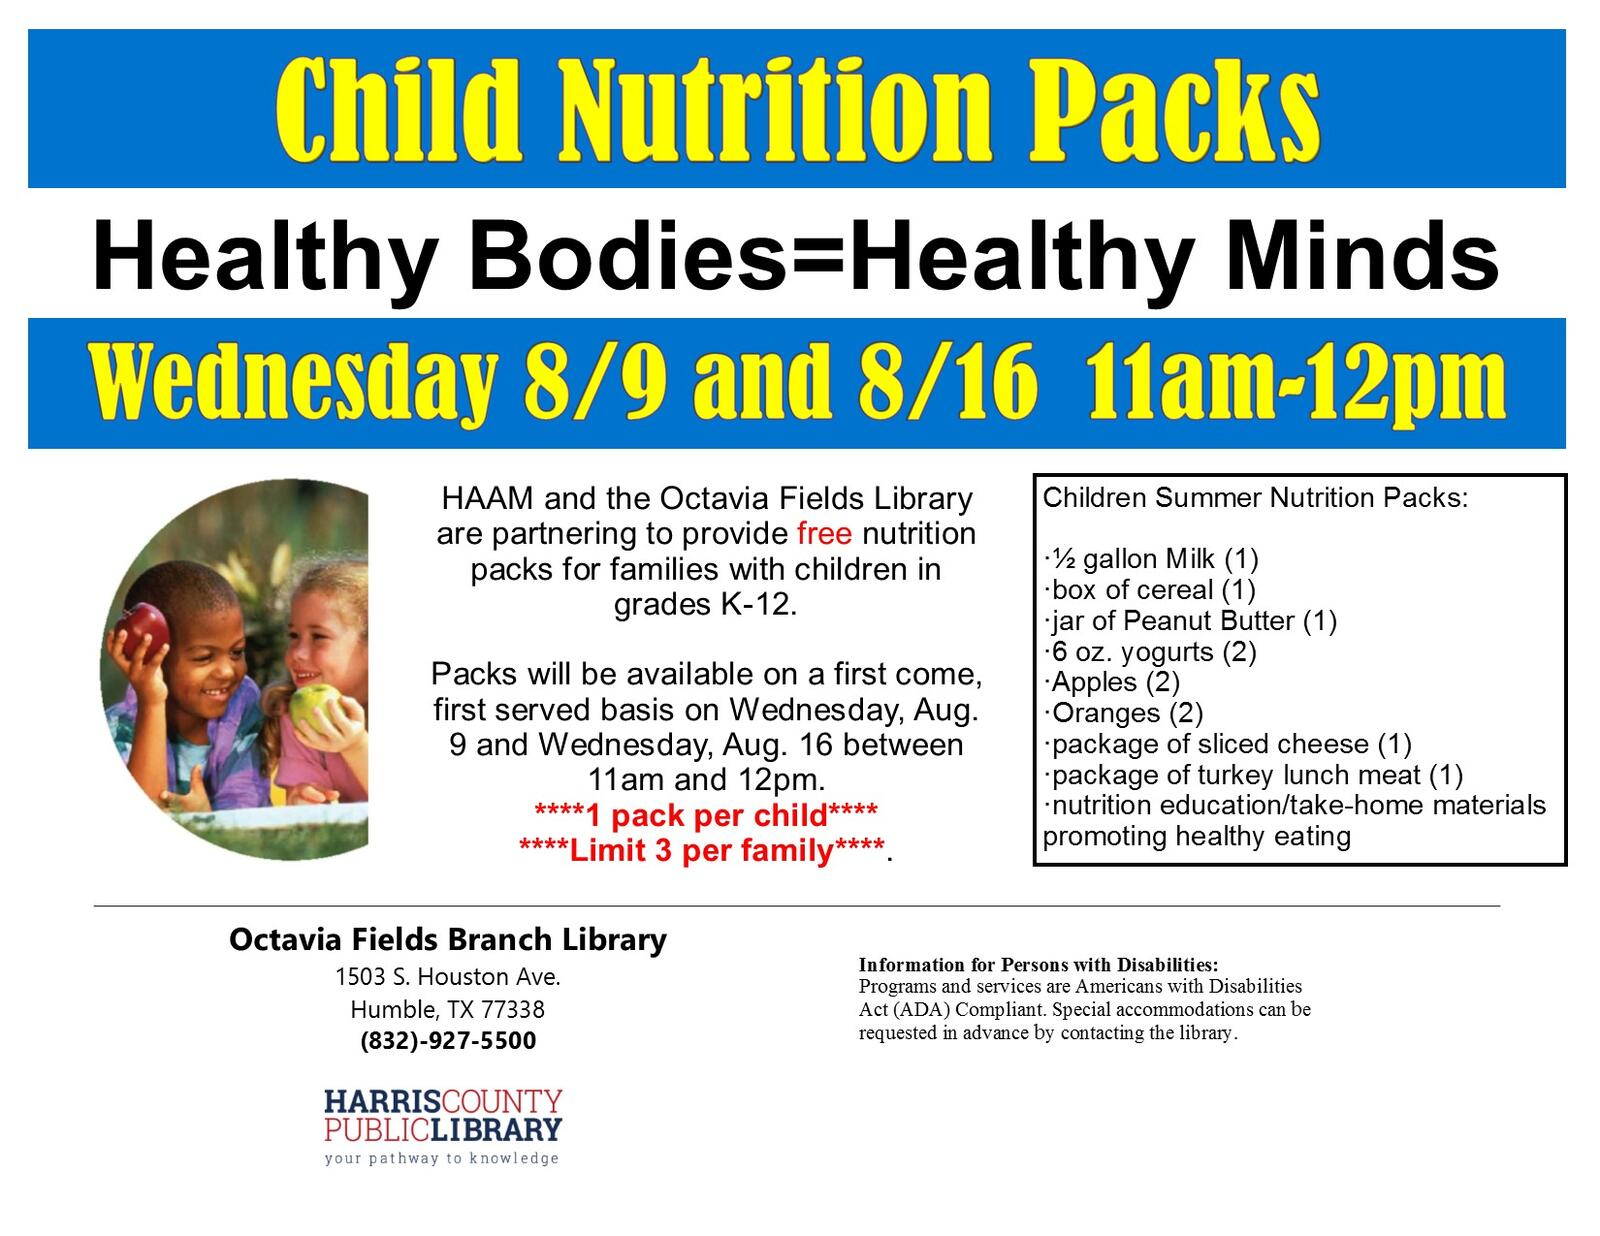 c2a1f45dd10d79 Summer Nutrition Packs at the Octavia Fields Library (Harris County Public  Libraries)